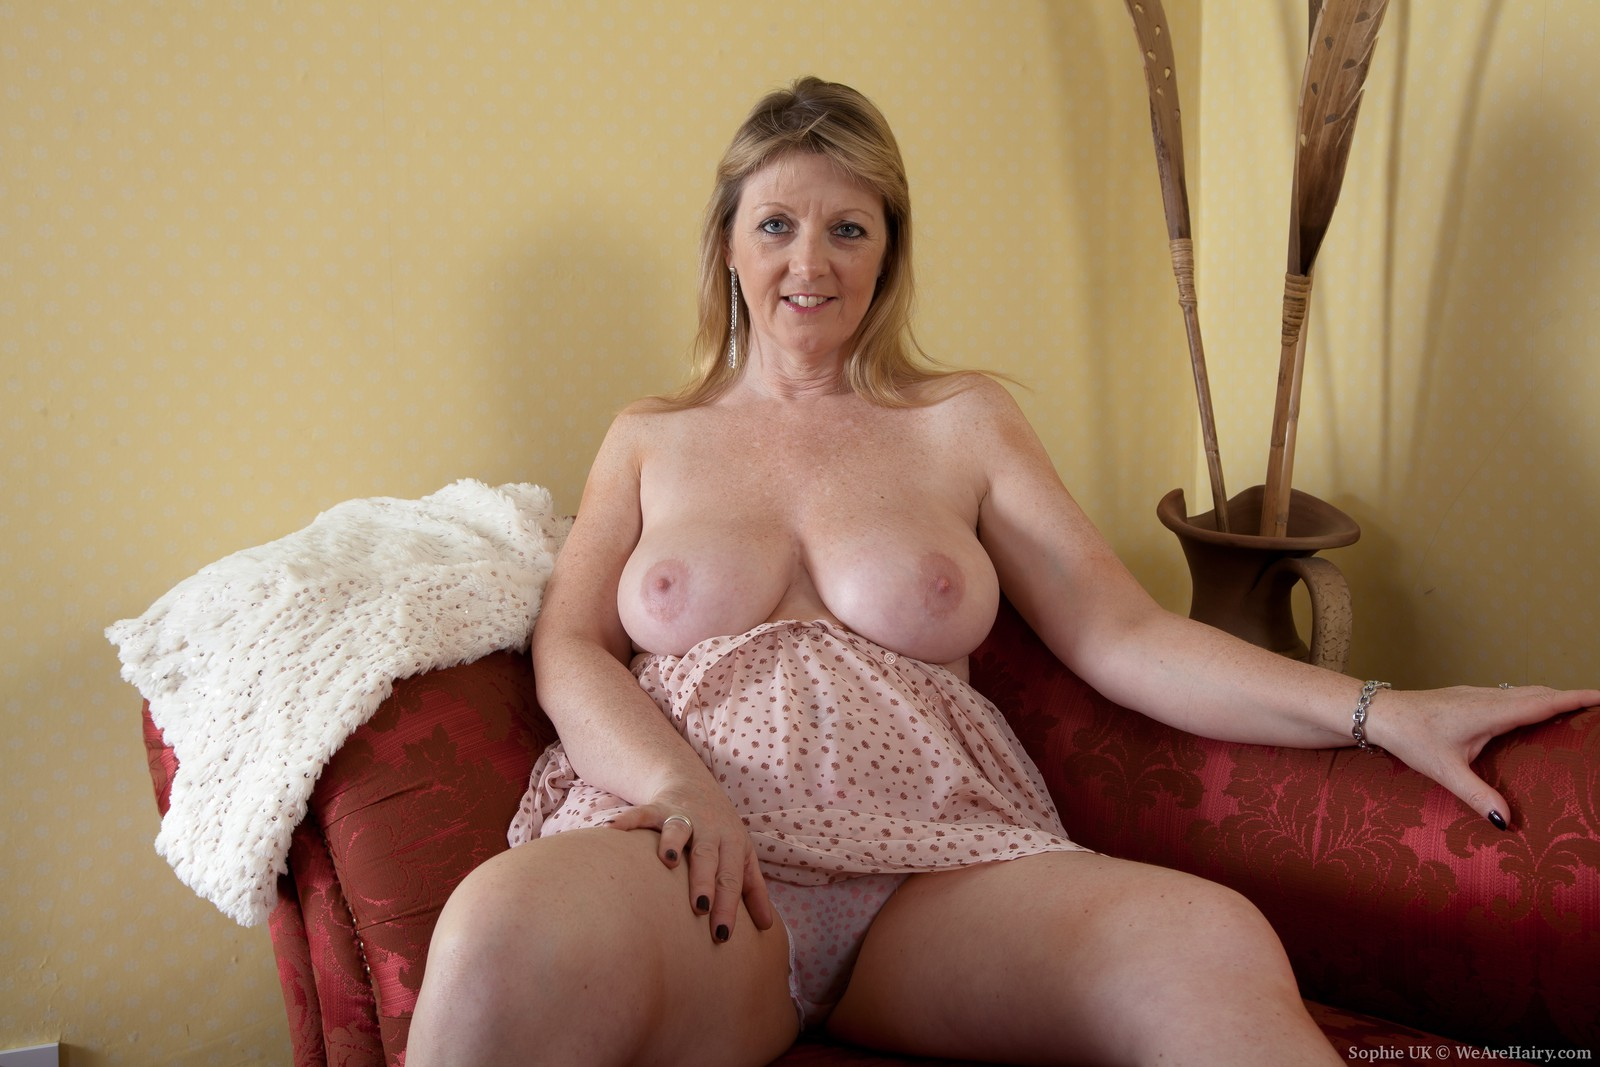 sophie uk is a natural looking woman with great tits and a hairy